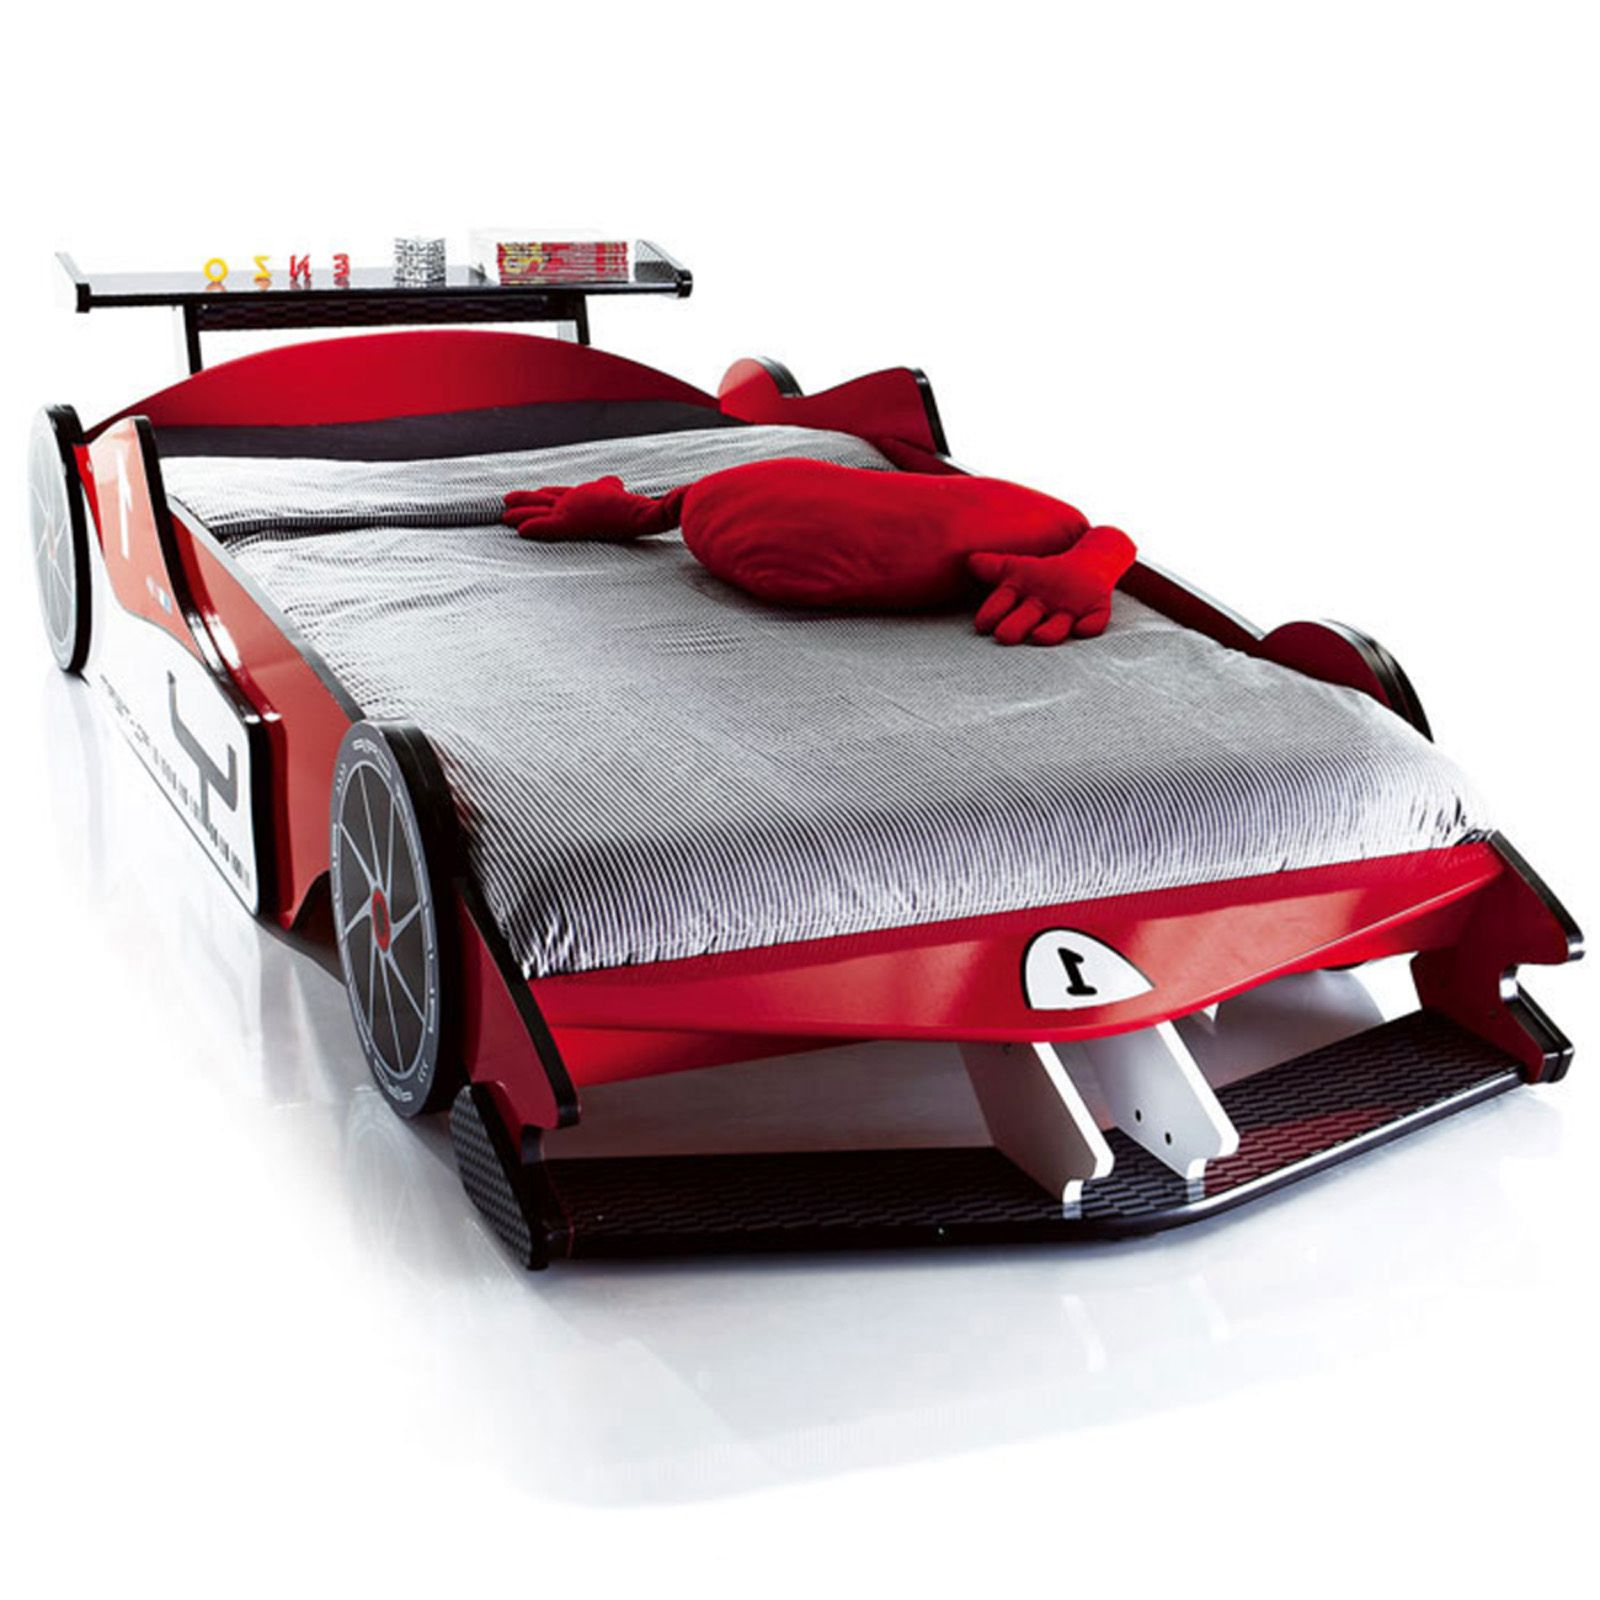 1000 Cny Wood Exports Cot Bed F1 Car Racing Car Bed Bed Bed